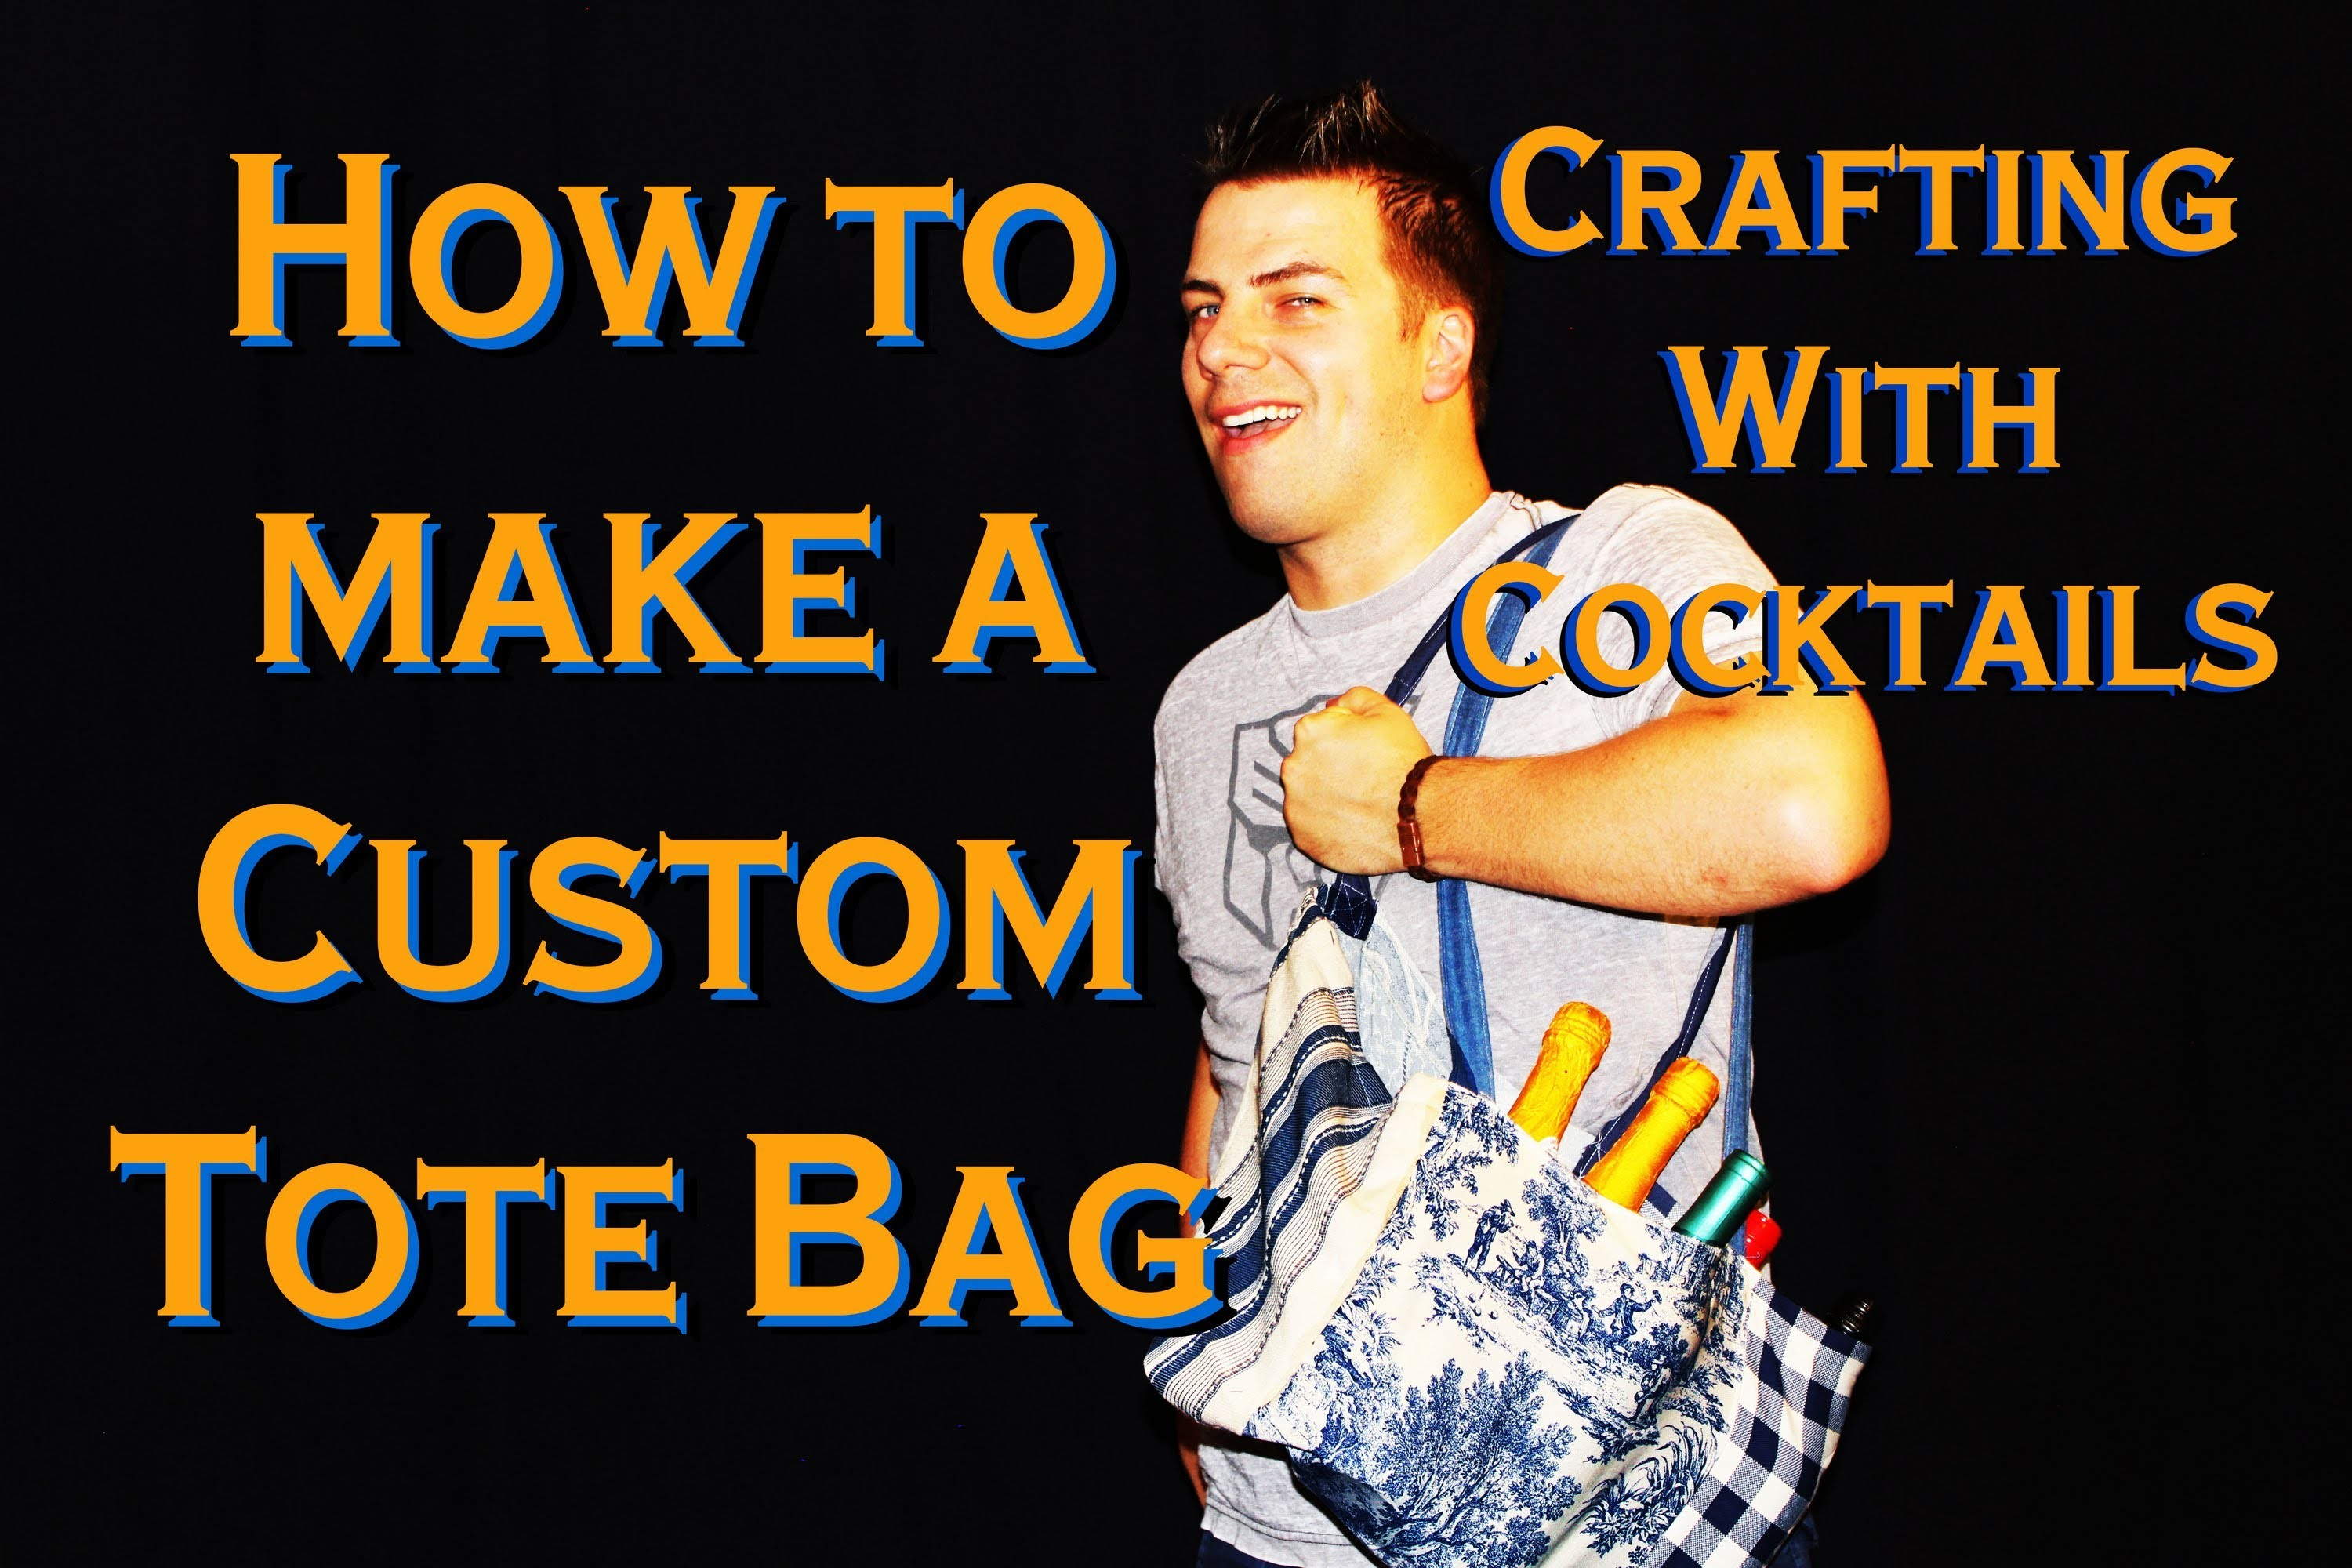 Crafting With Cocktails: How to Make a Tote Bag (2.16)